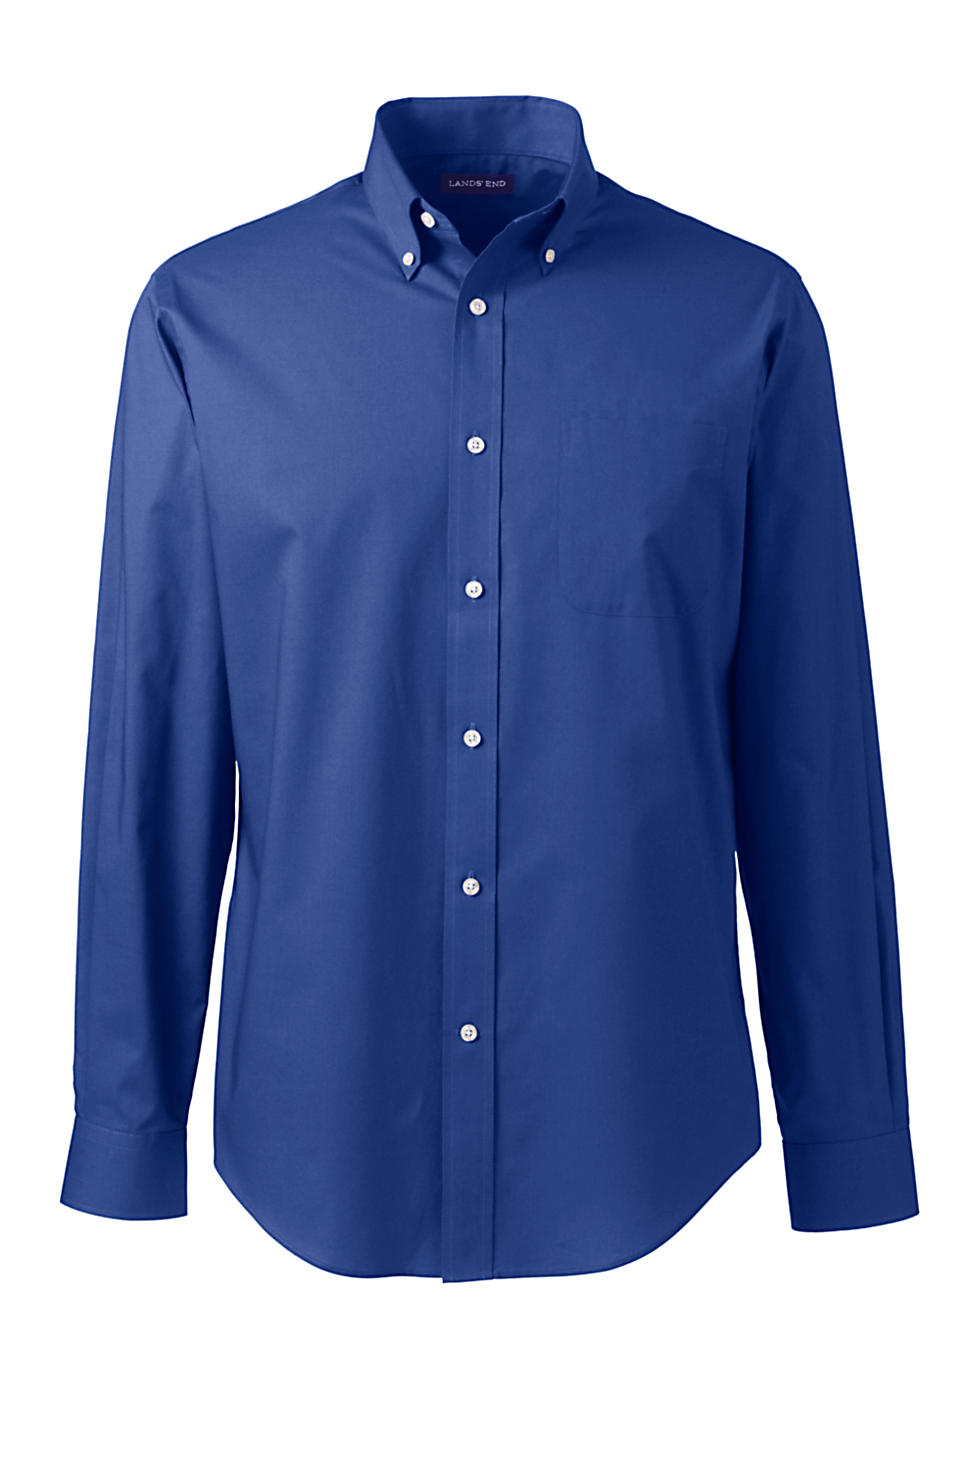 Lands' End Men's Long Sleeve Poplin Shirt